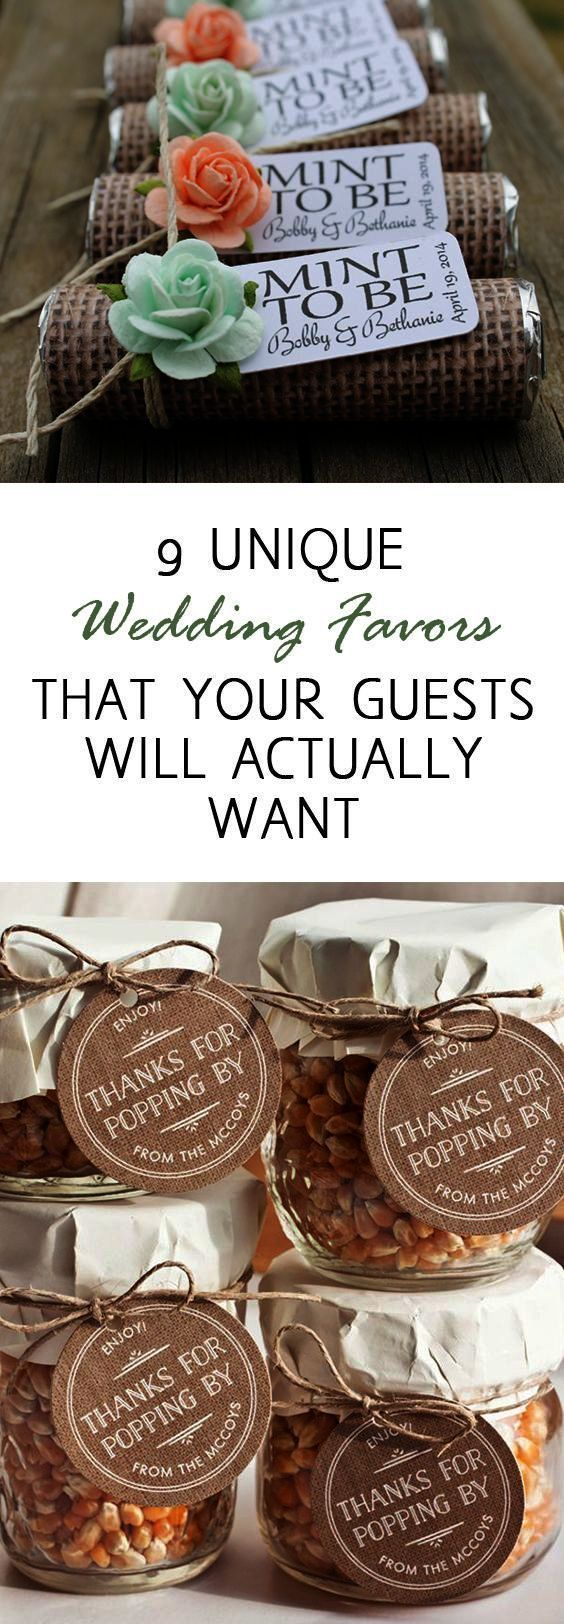 Ahhh Wedding Favors Unlimited Coupon 2017 D Weddingfavours2017 Weddingfavorsunlimitedcoupon201 Wedding Reception Favors Diy Wedding Favors Frugal Wedding